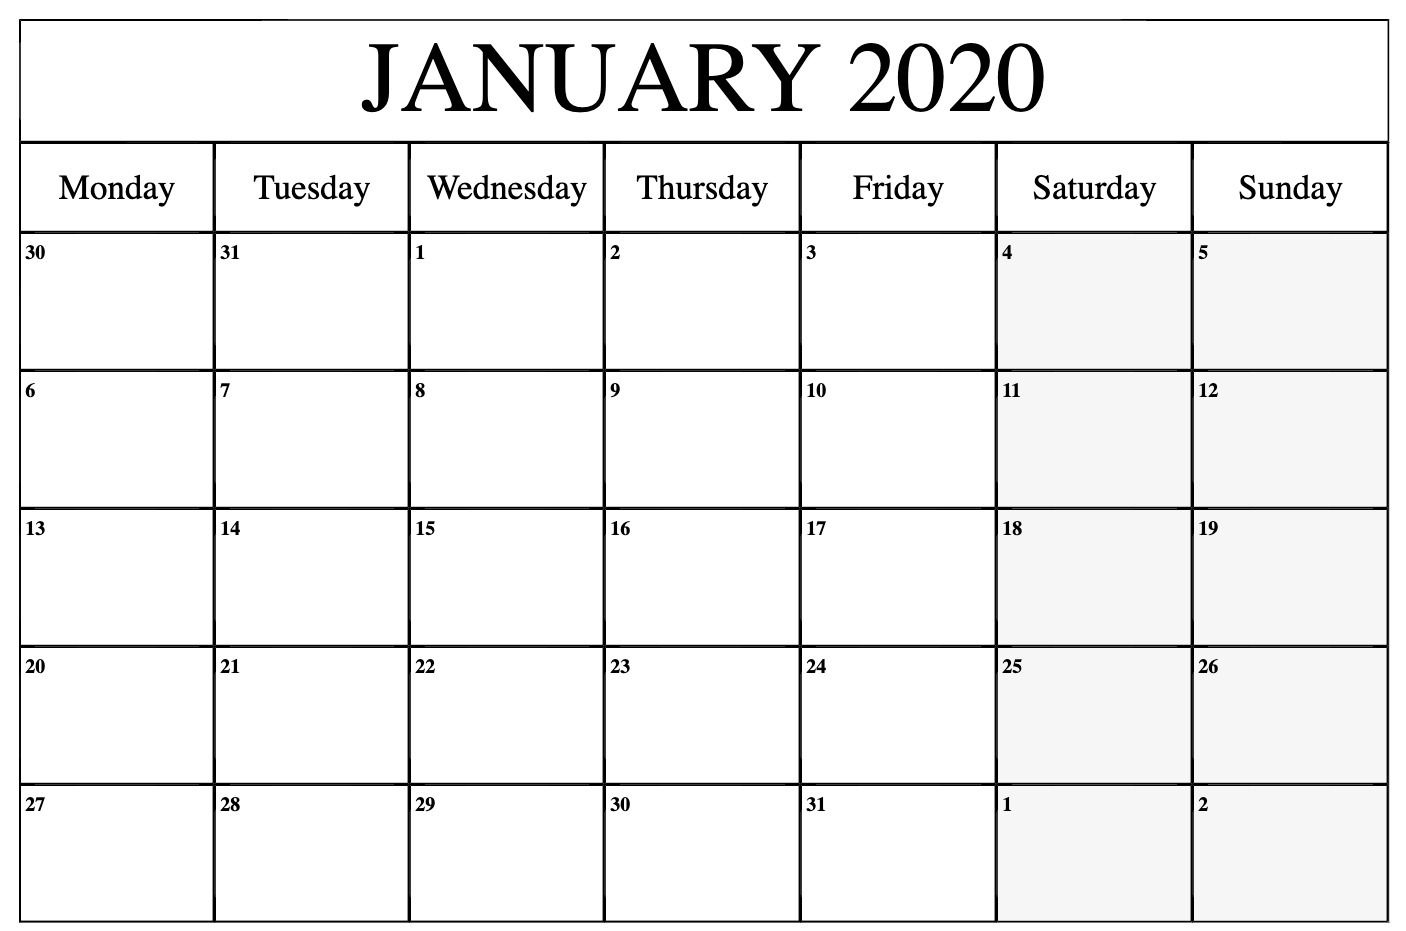 January 2020 Calendar Printable Monday #2020Calendar